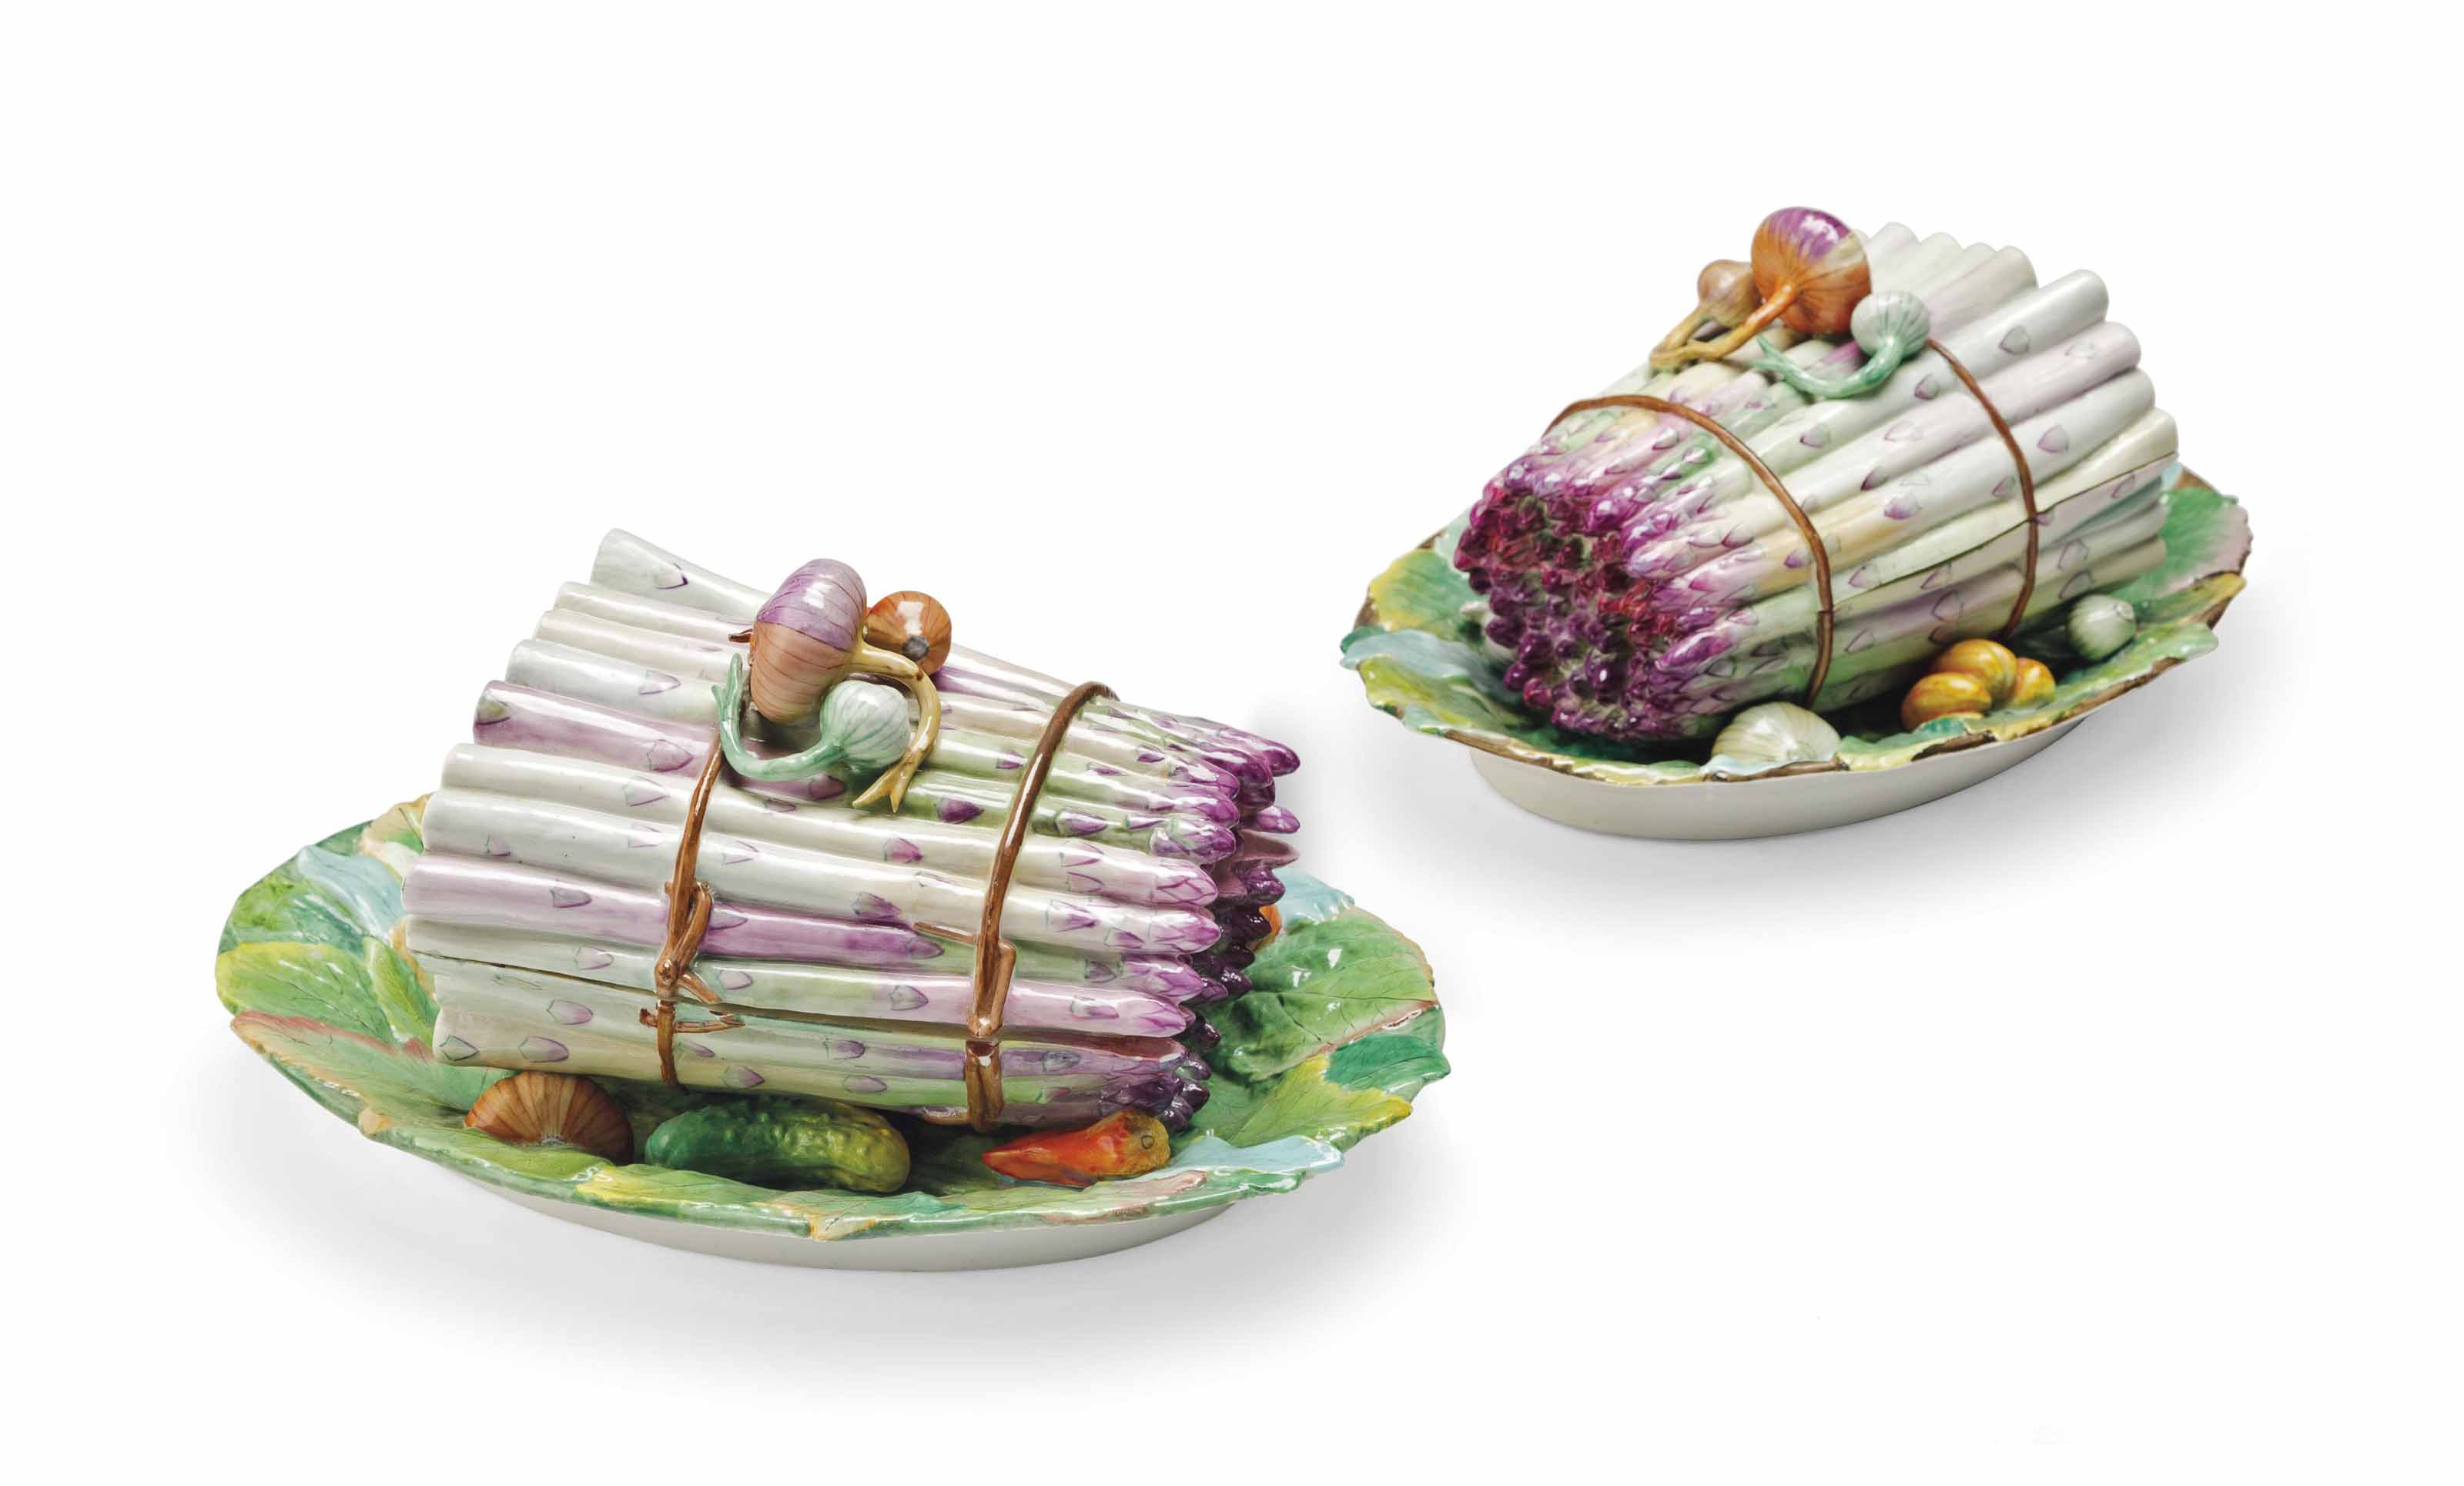 A PAIR OF JACOB PETIT PORCELAIN ASPARAGUS TUREENS AND COVERS ON FIXED STANDS